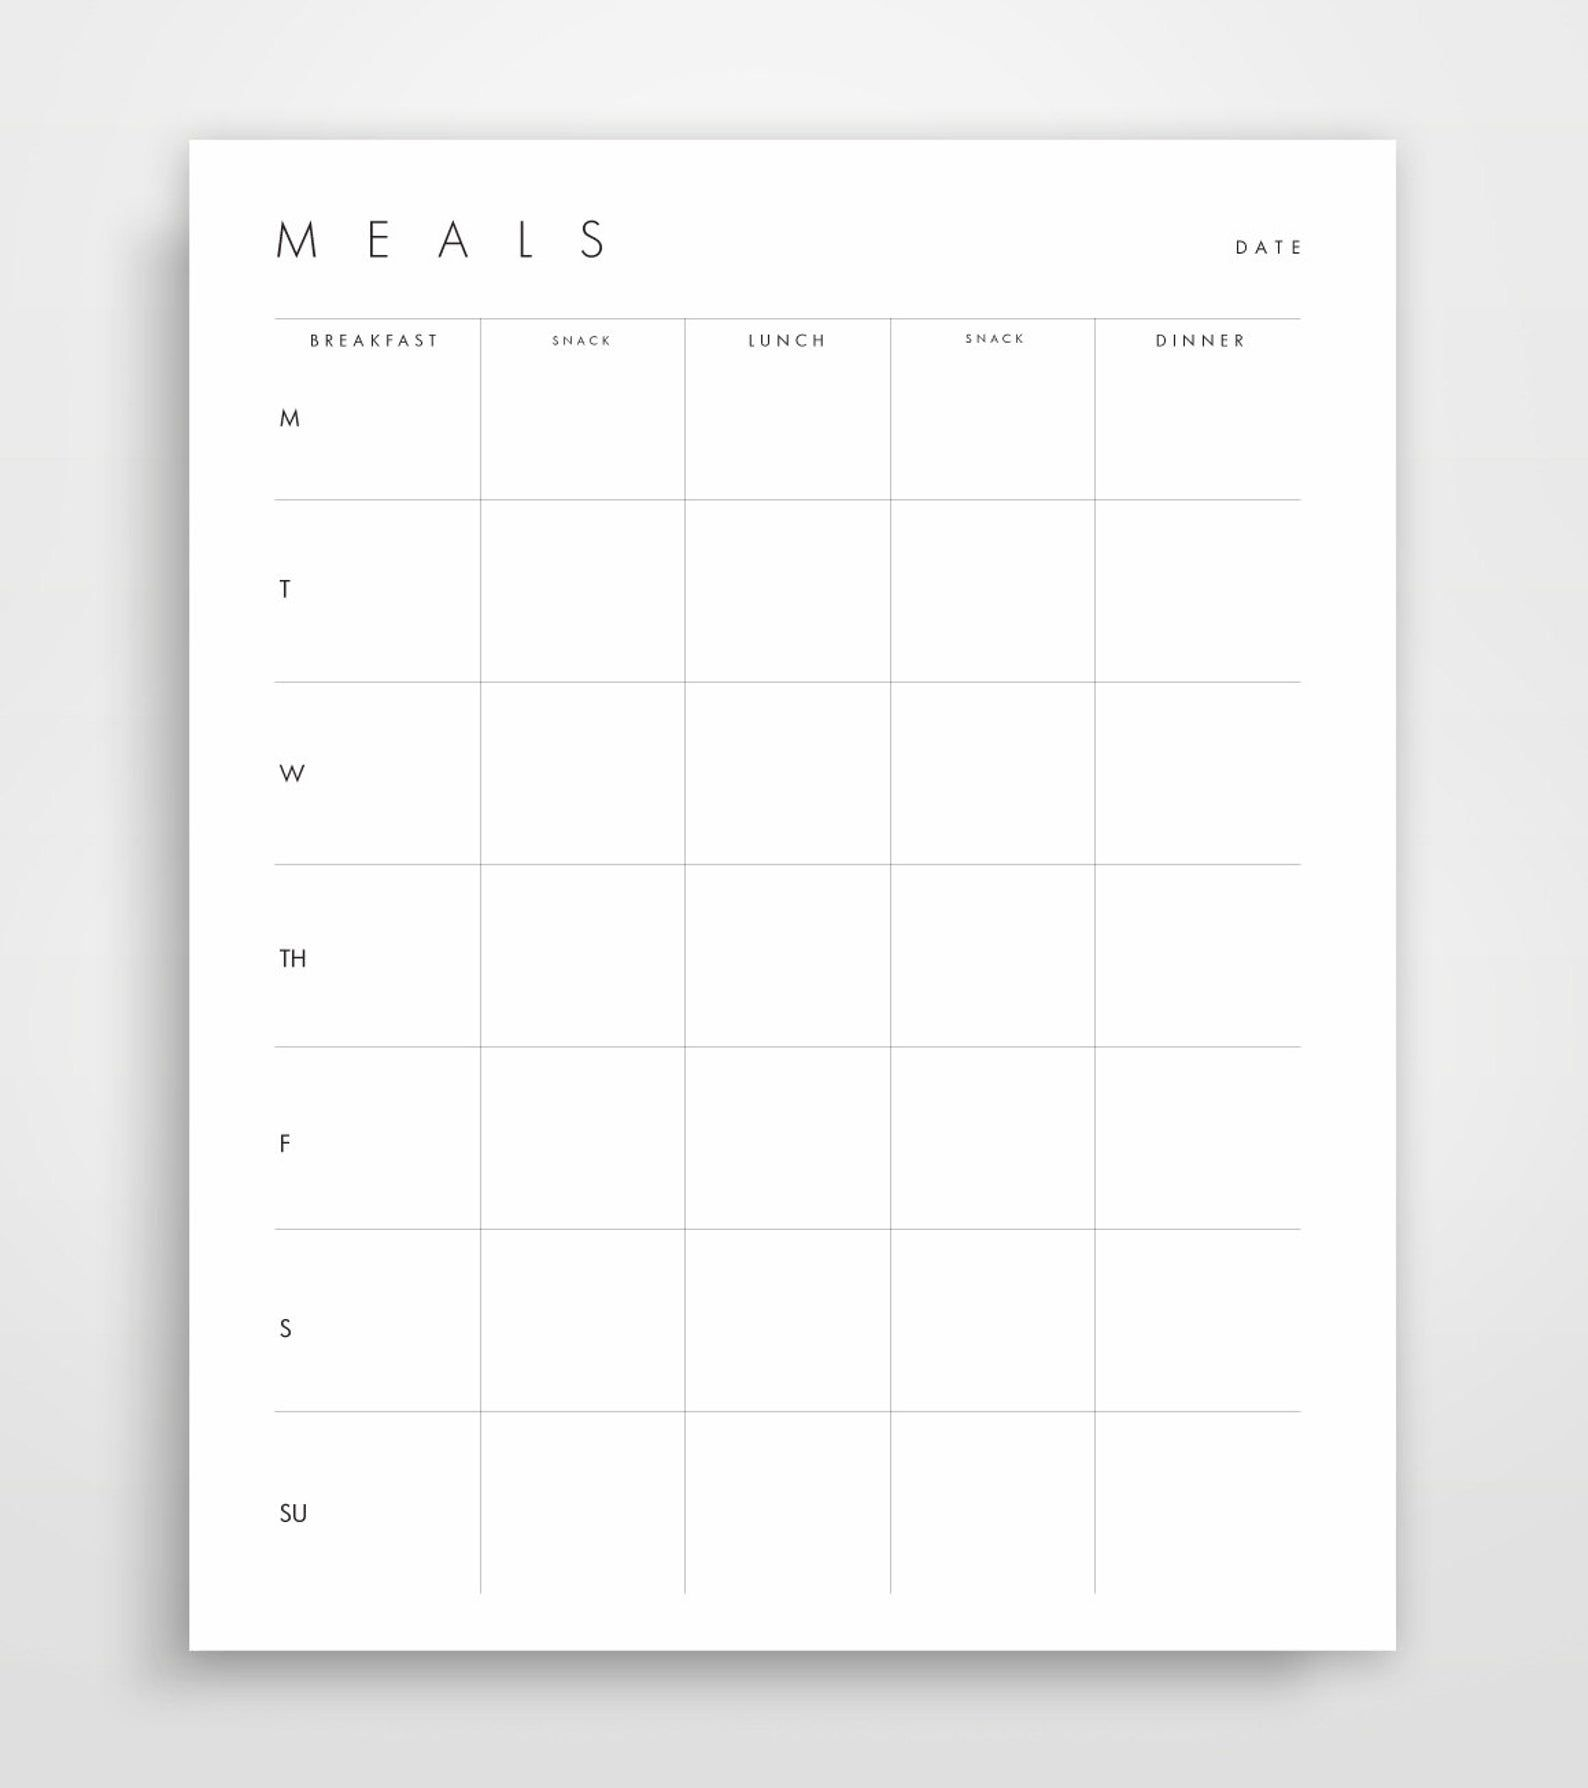 Meal Planner Grocery List Shopping List Shopping Planner